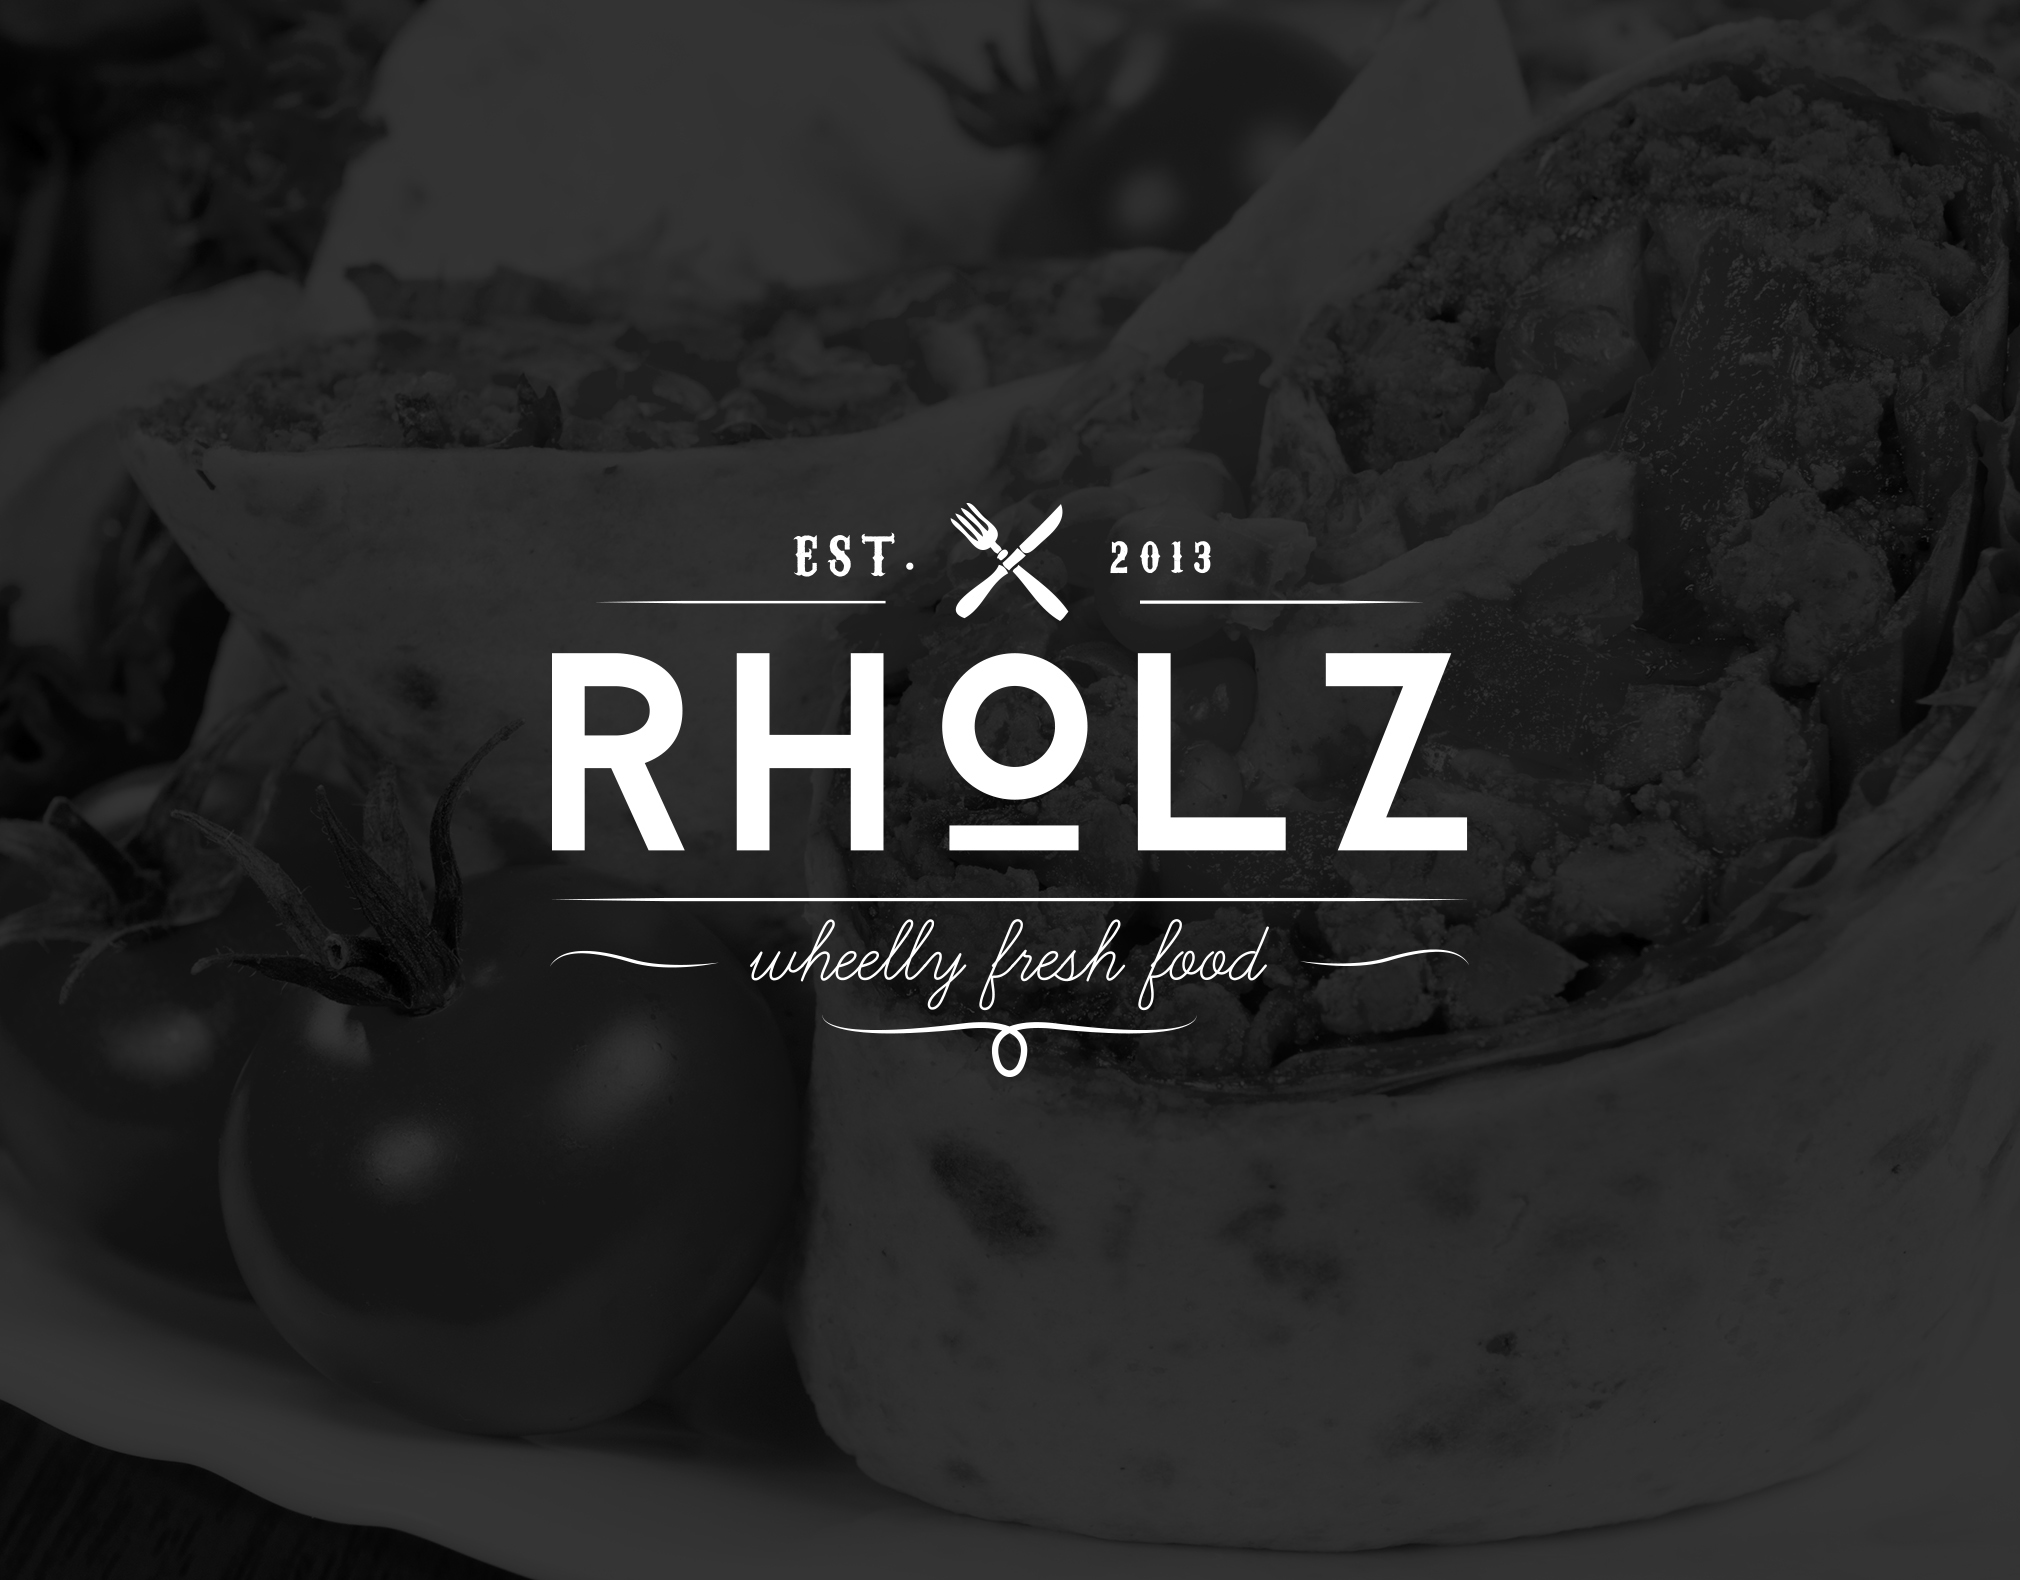 RHOLZ - wheelly fresh food